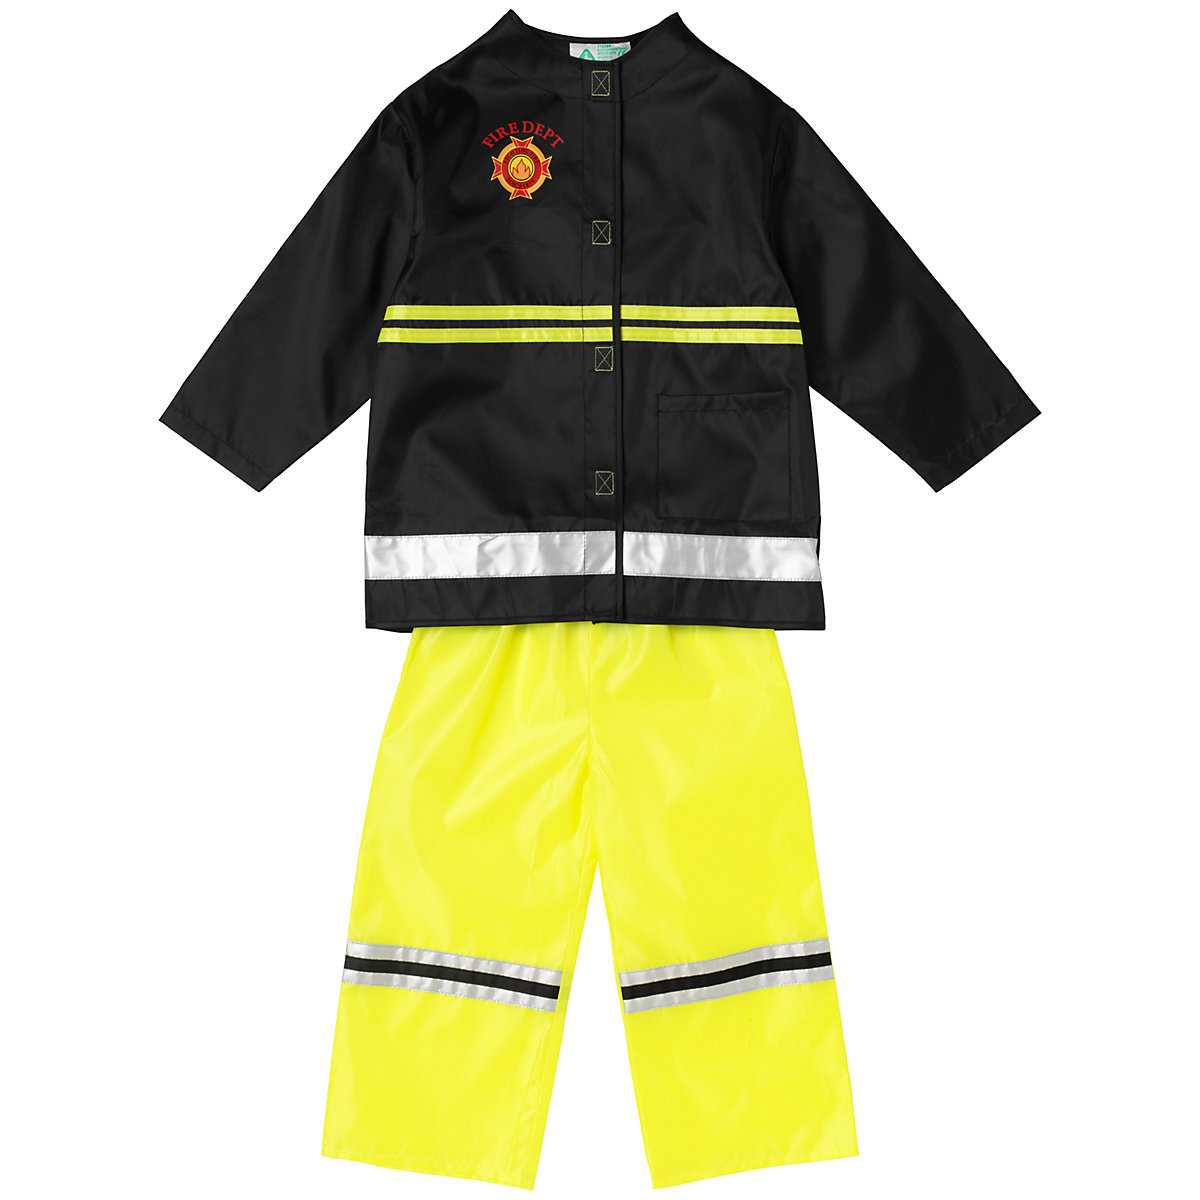 New ELC Boys and Girls Firefighter Outfit Toy From 3 years